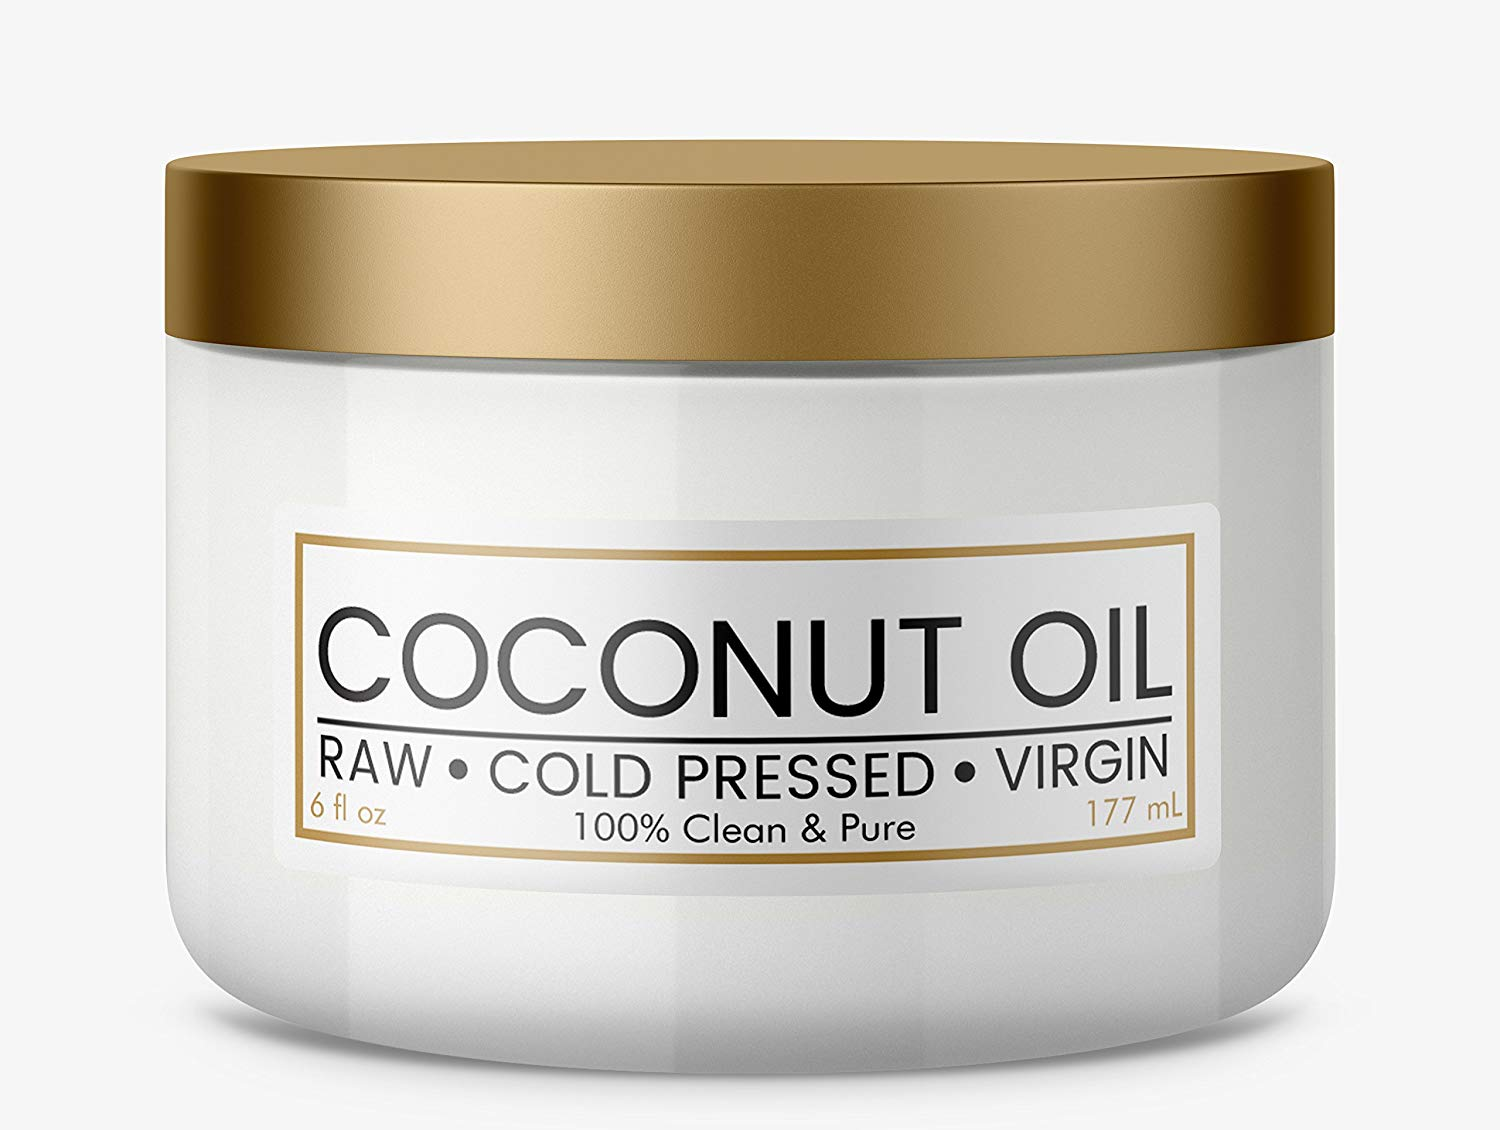 Pure, Organic, Coconut Oil for Hair & Skin, Raw, Cold Pressed, Extra Virgin (6 oz)